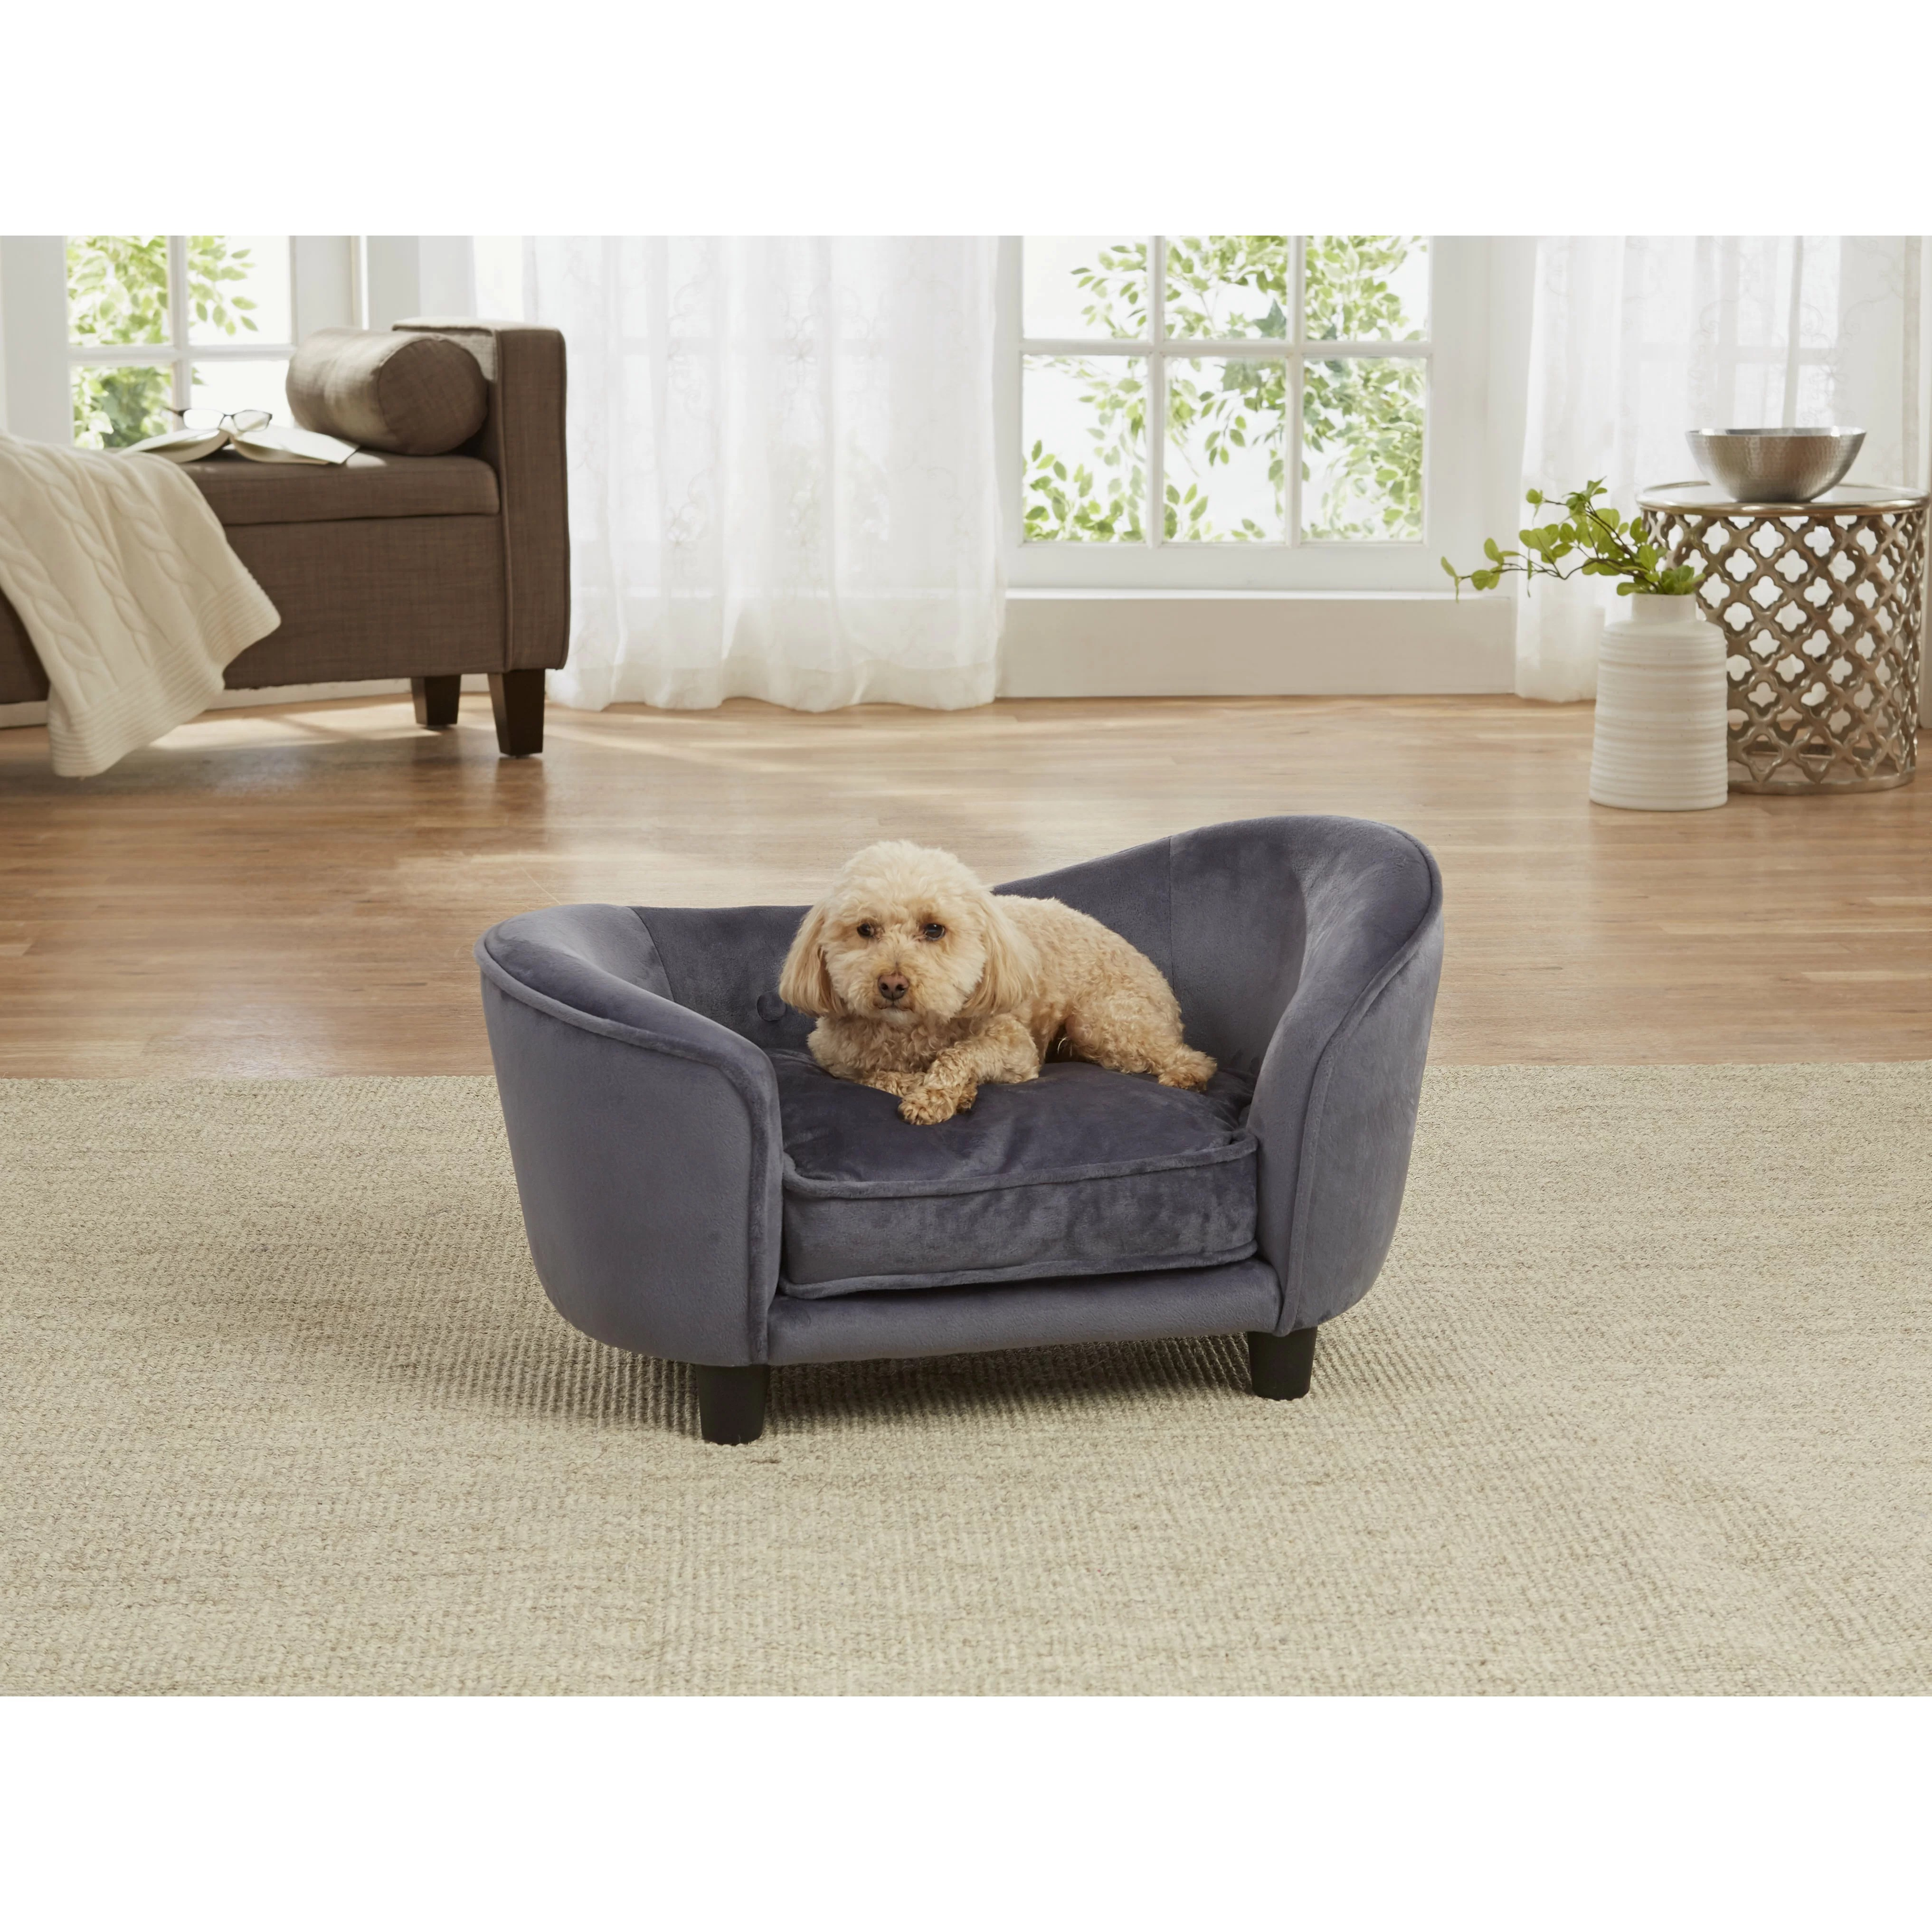 pet dog sofa large chair cover enchanted home ultra plush snuggle with